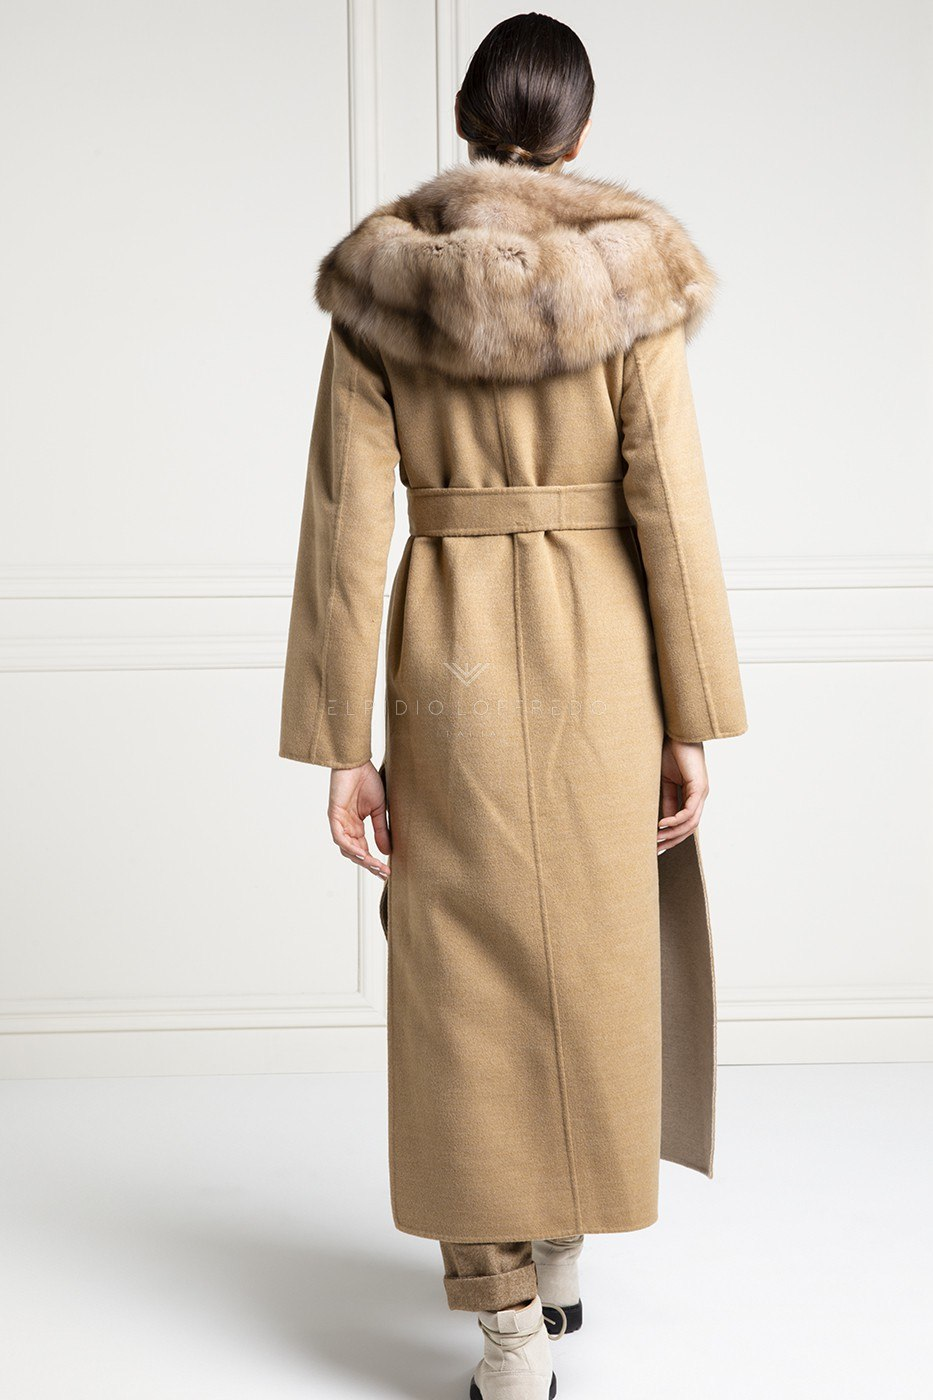 Beige Cashmere Loro Piana Coat with Barguzinsky Russian Sable Fur